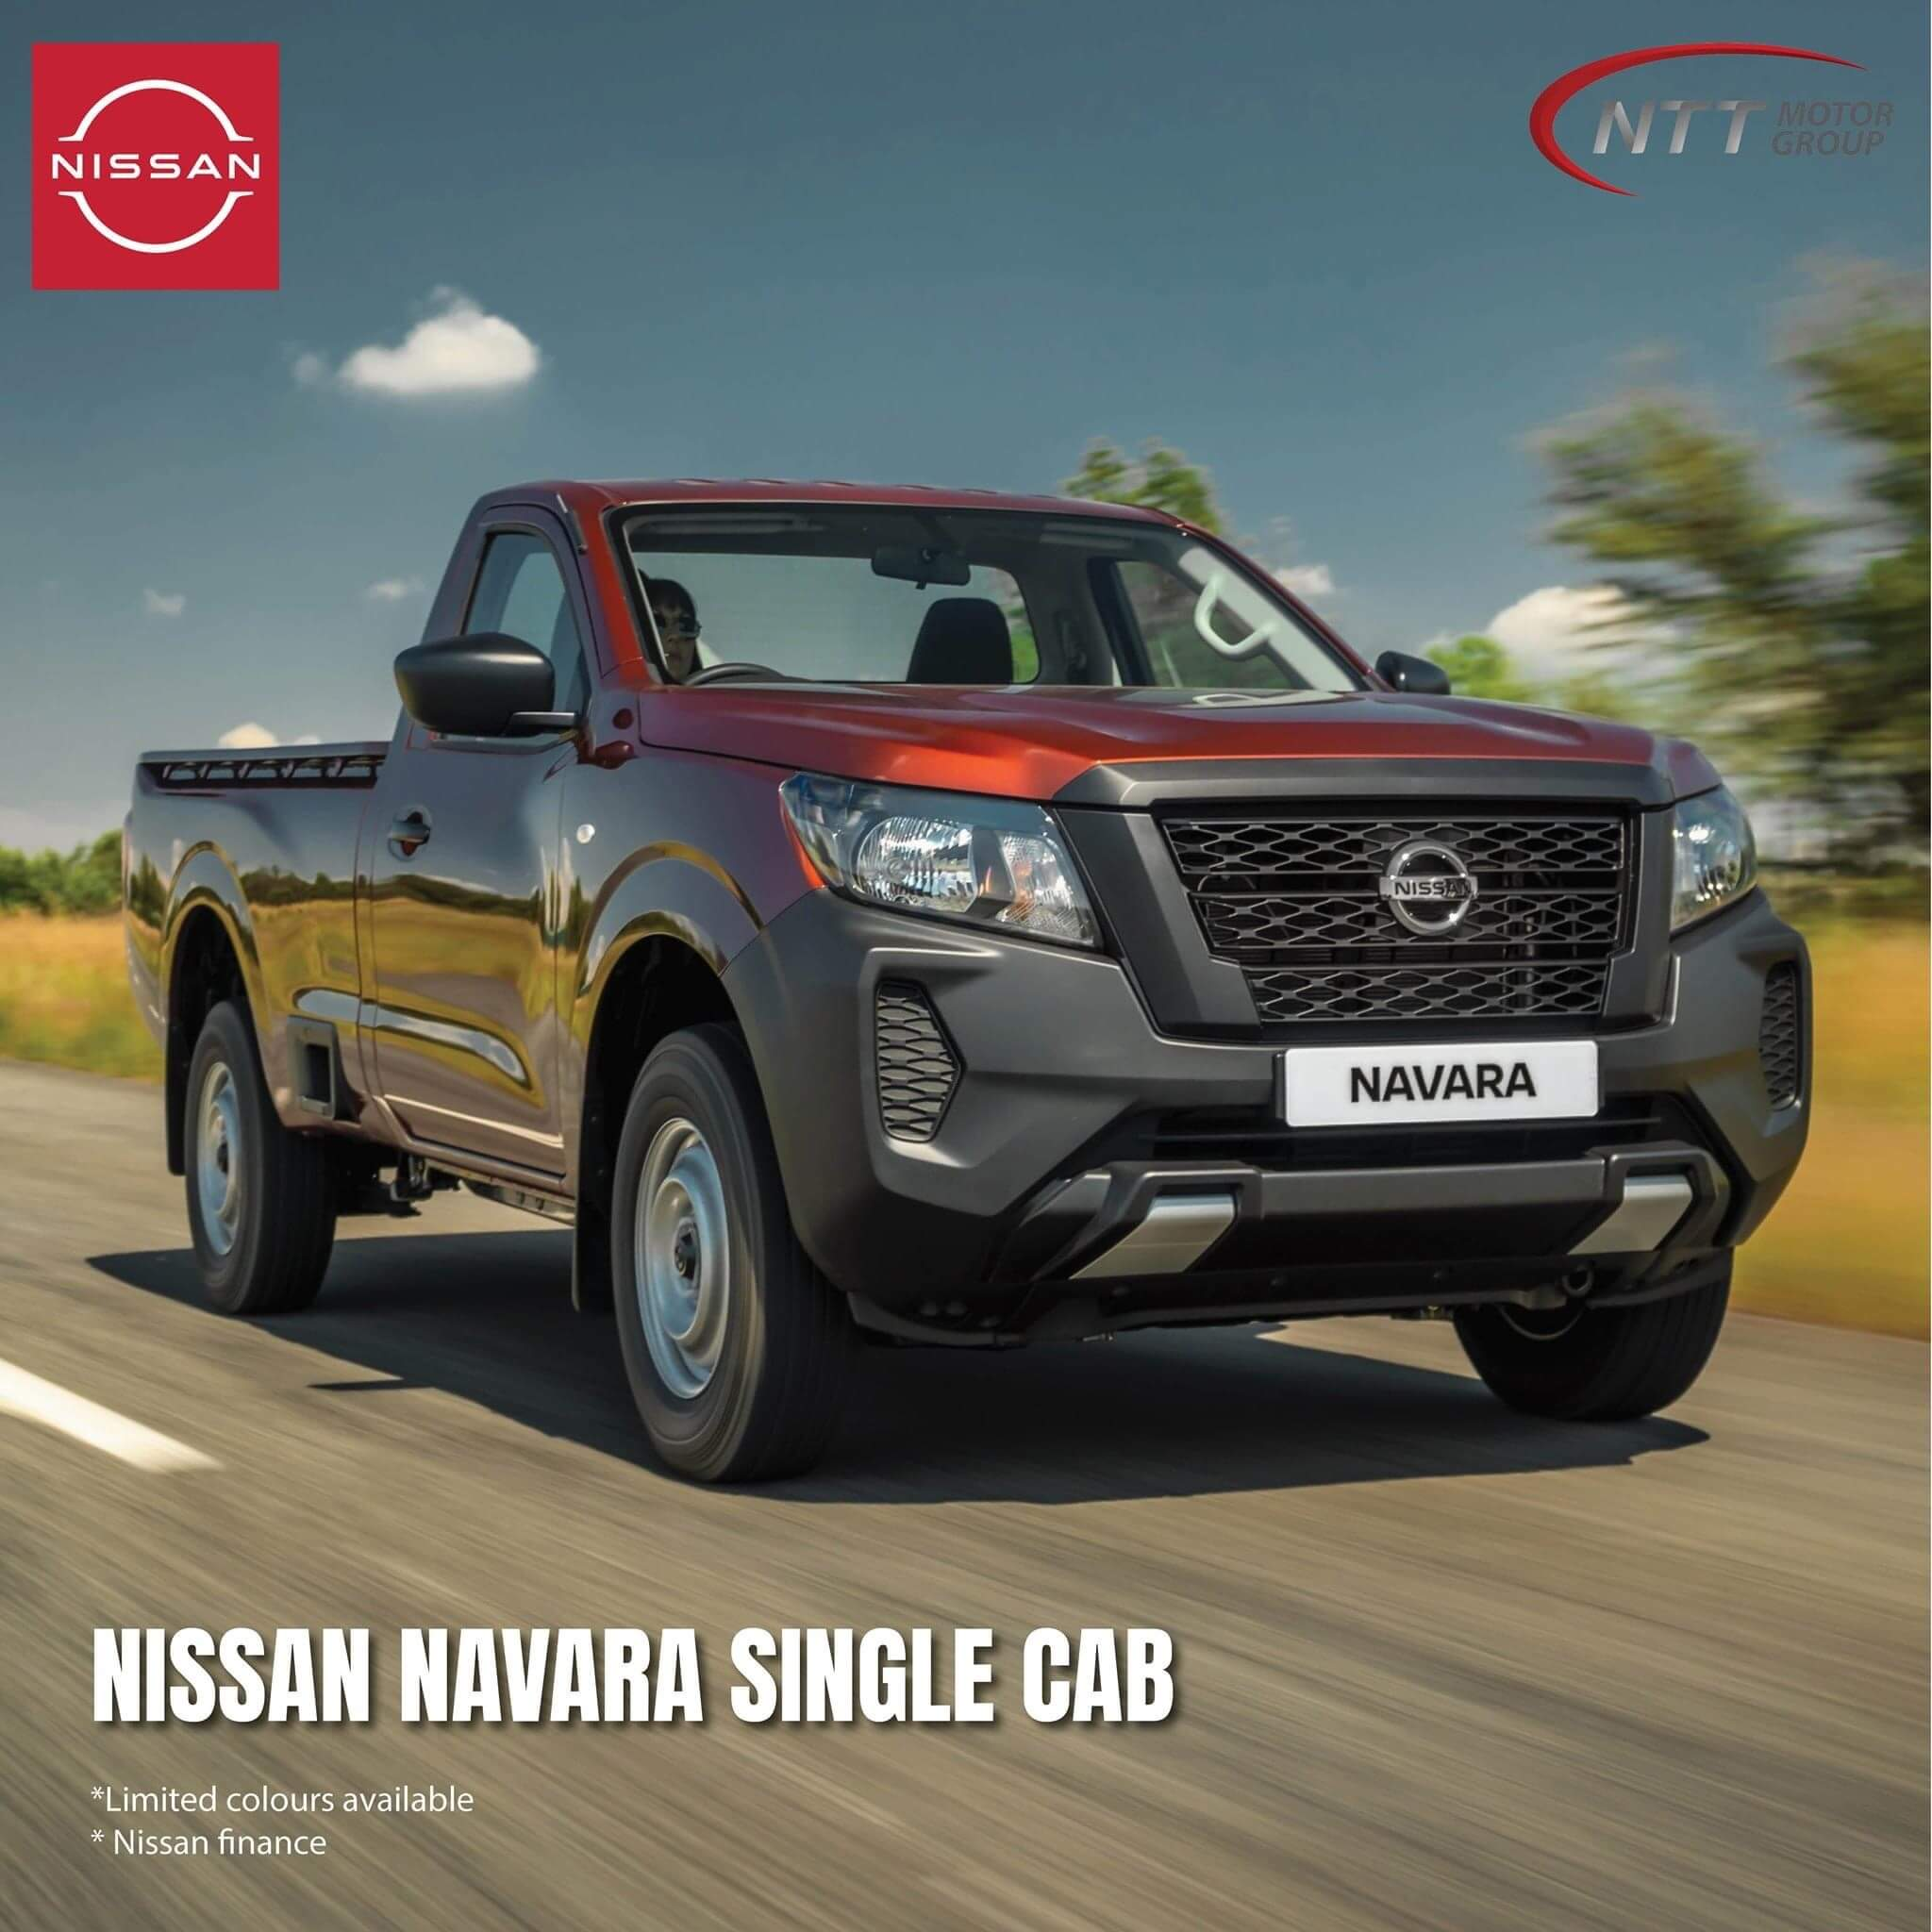 New Nissan Navara Single Cab - NTT Nissan South Africa - New, Used & Demo Cars for Sale in South Africa